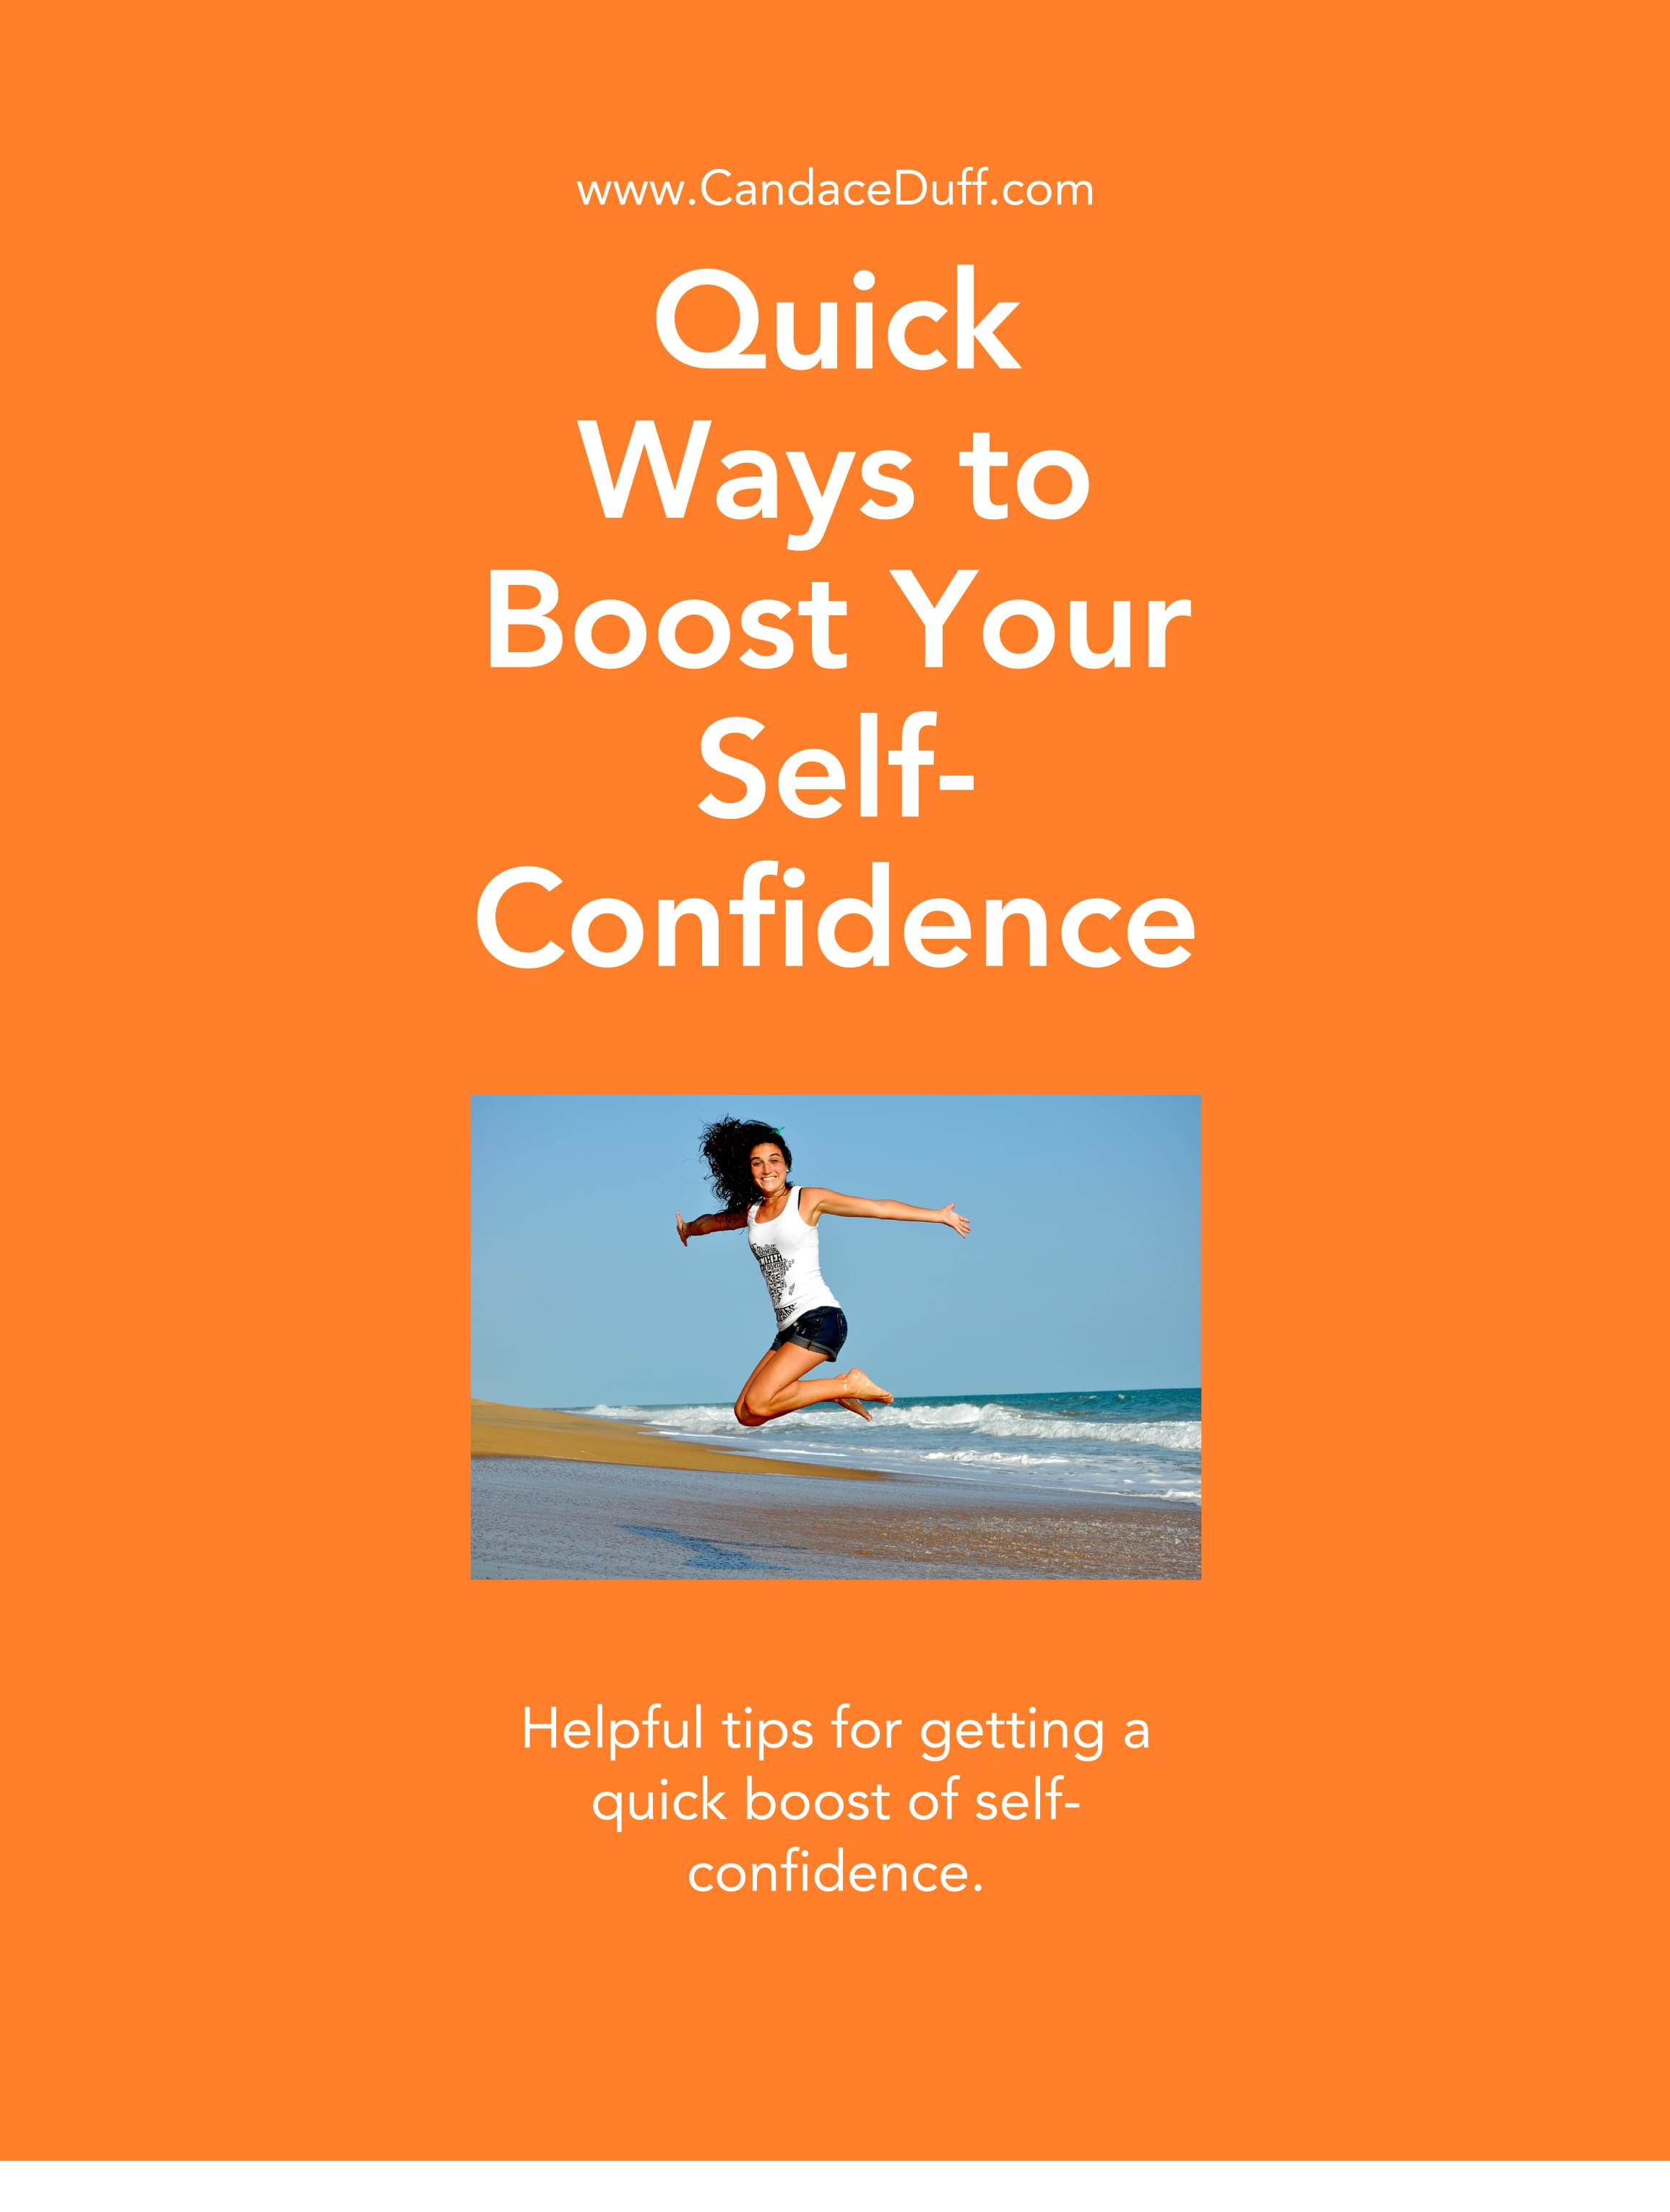 Quick Ways to Boost Your Self-Esteem